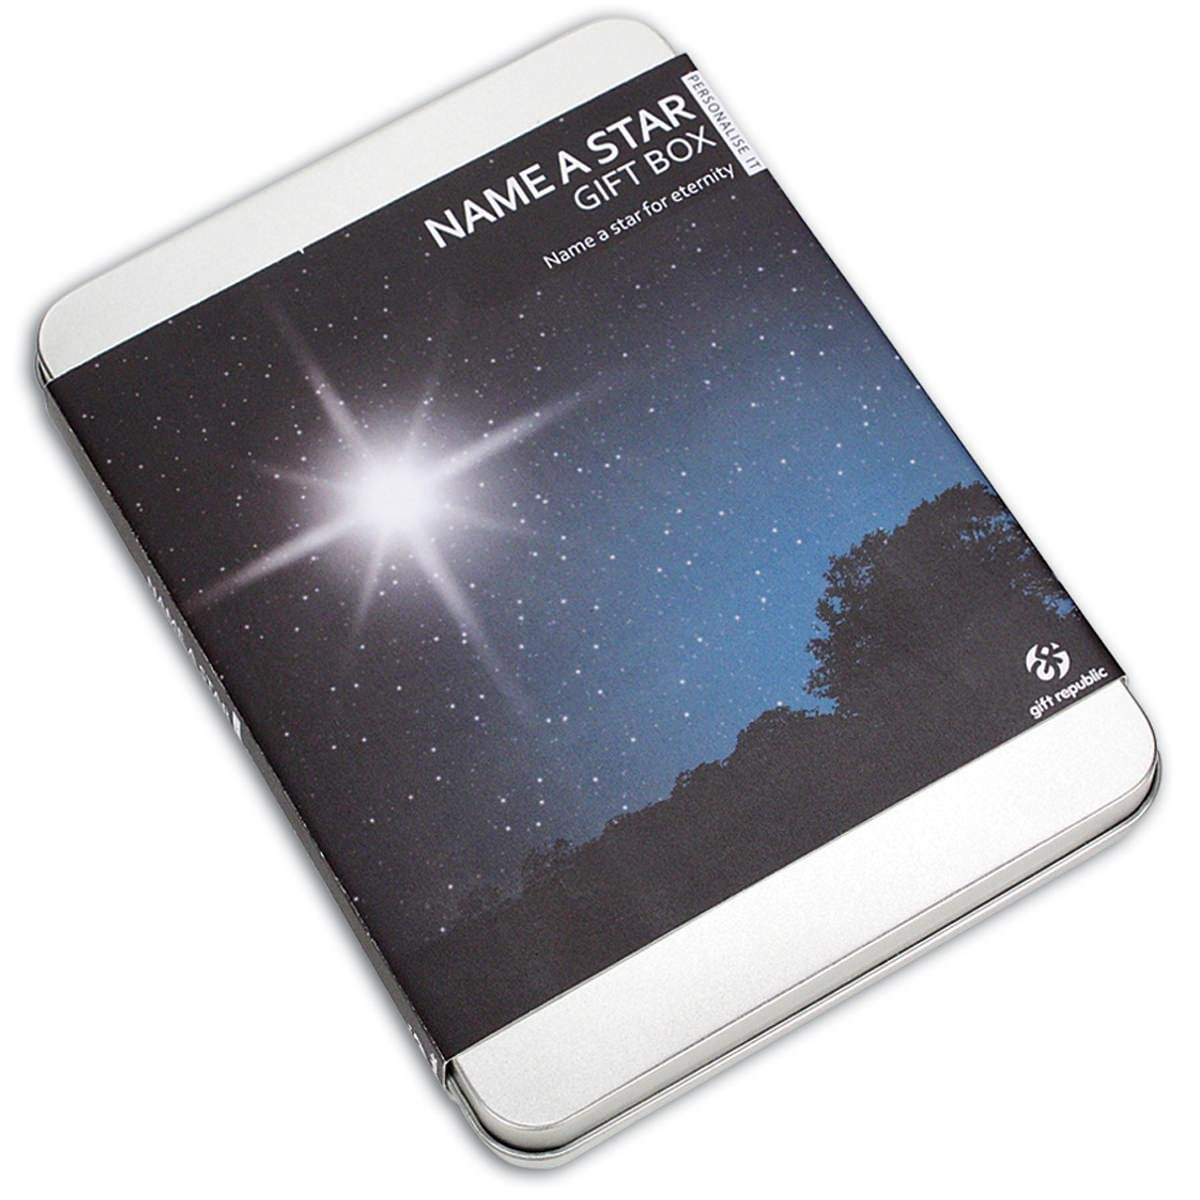 Name a Star by girlfriend's name unique birthday gifts for her